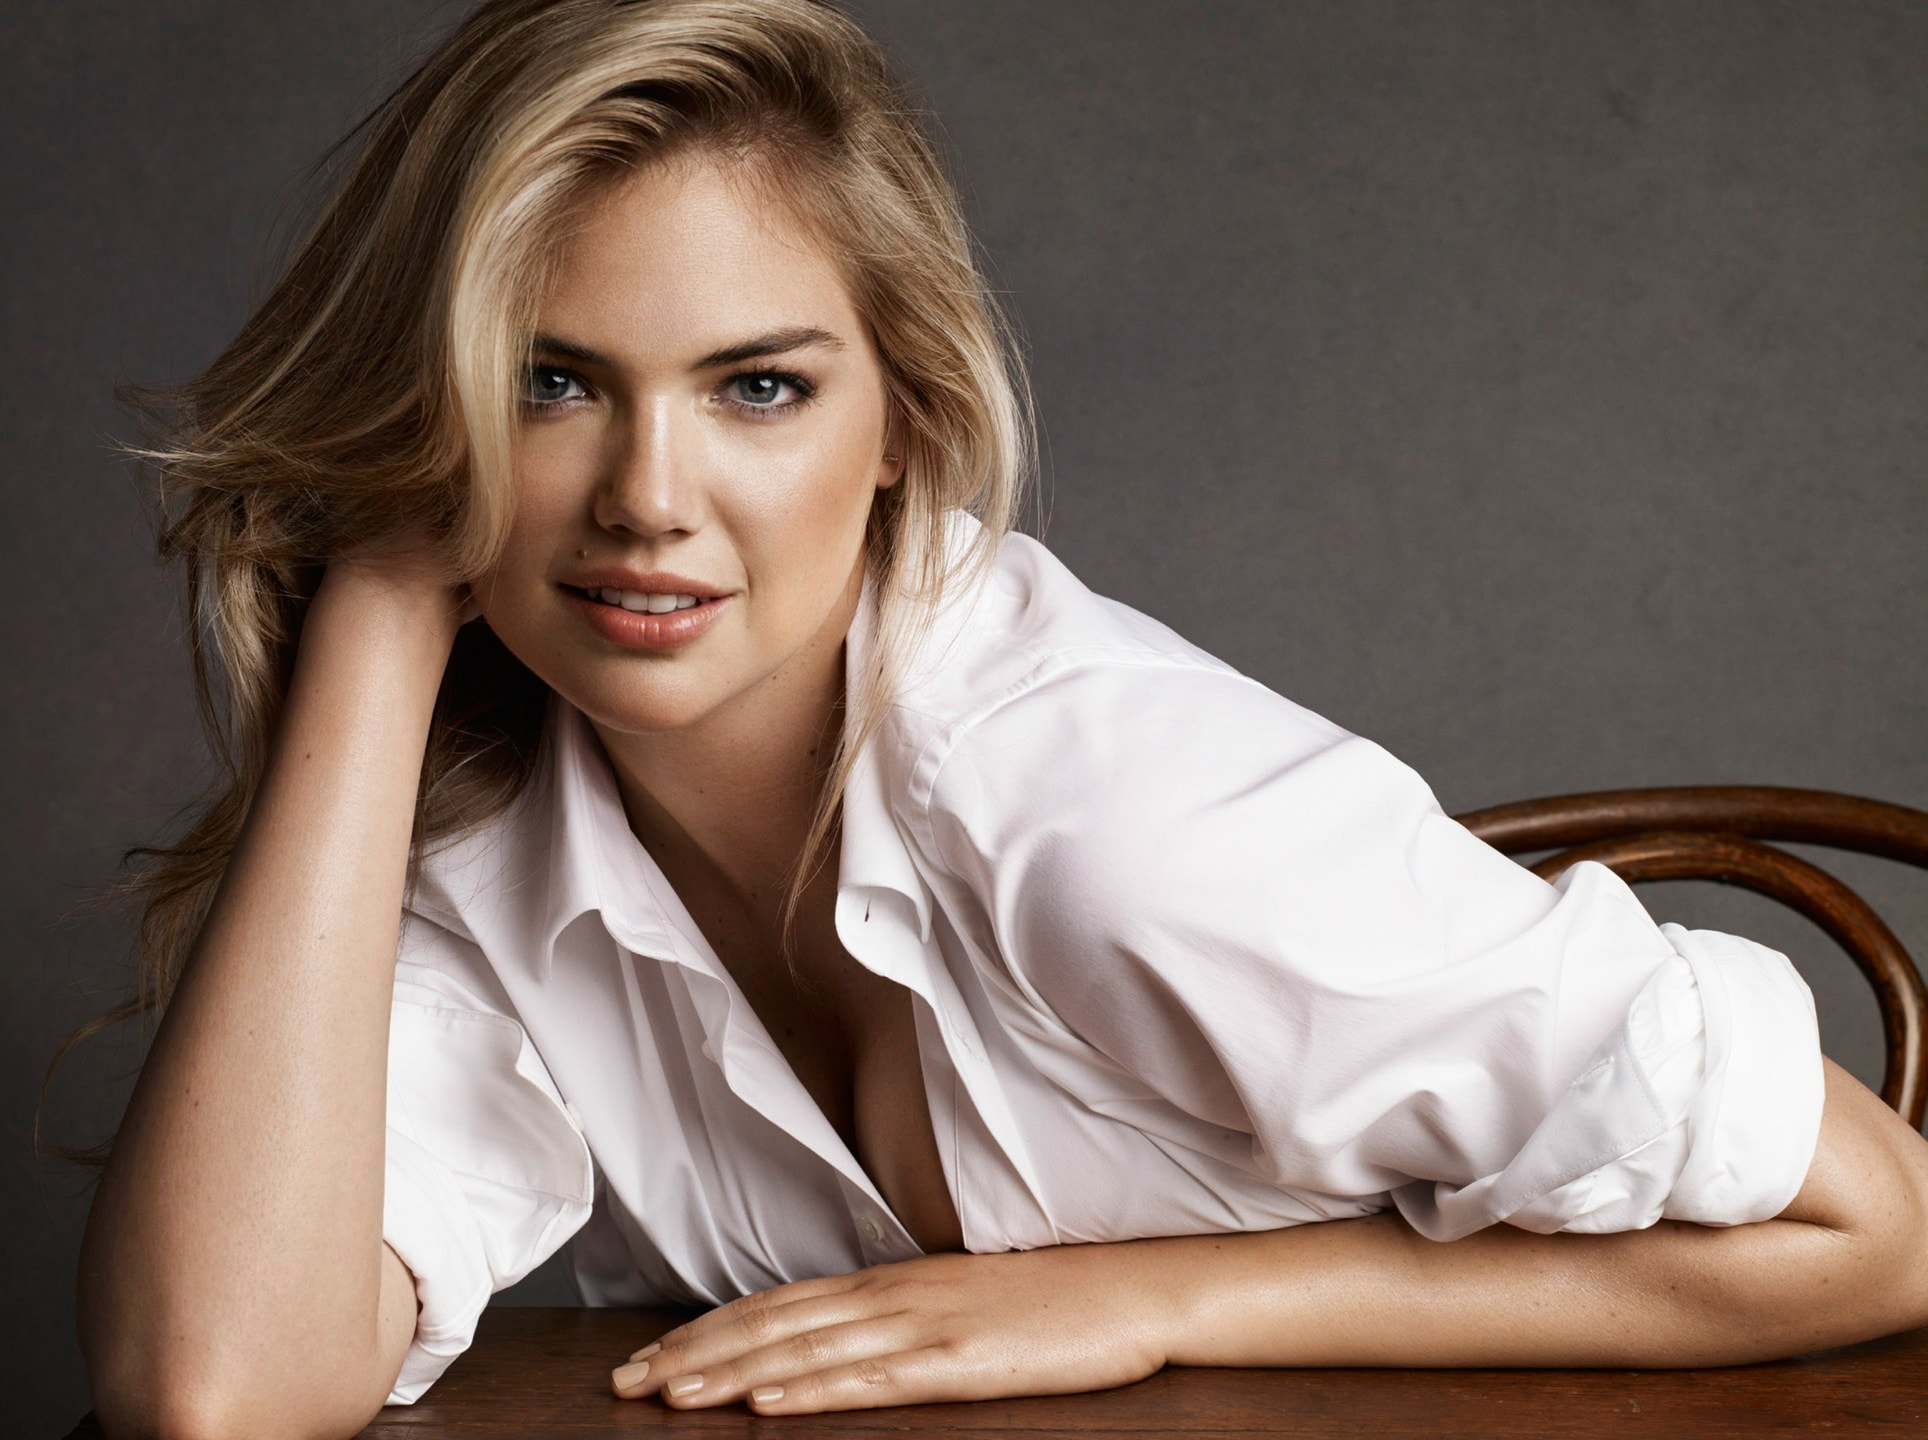 Kate Upton Download